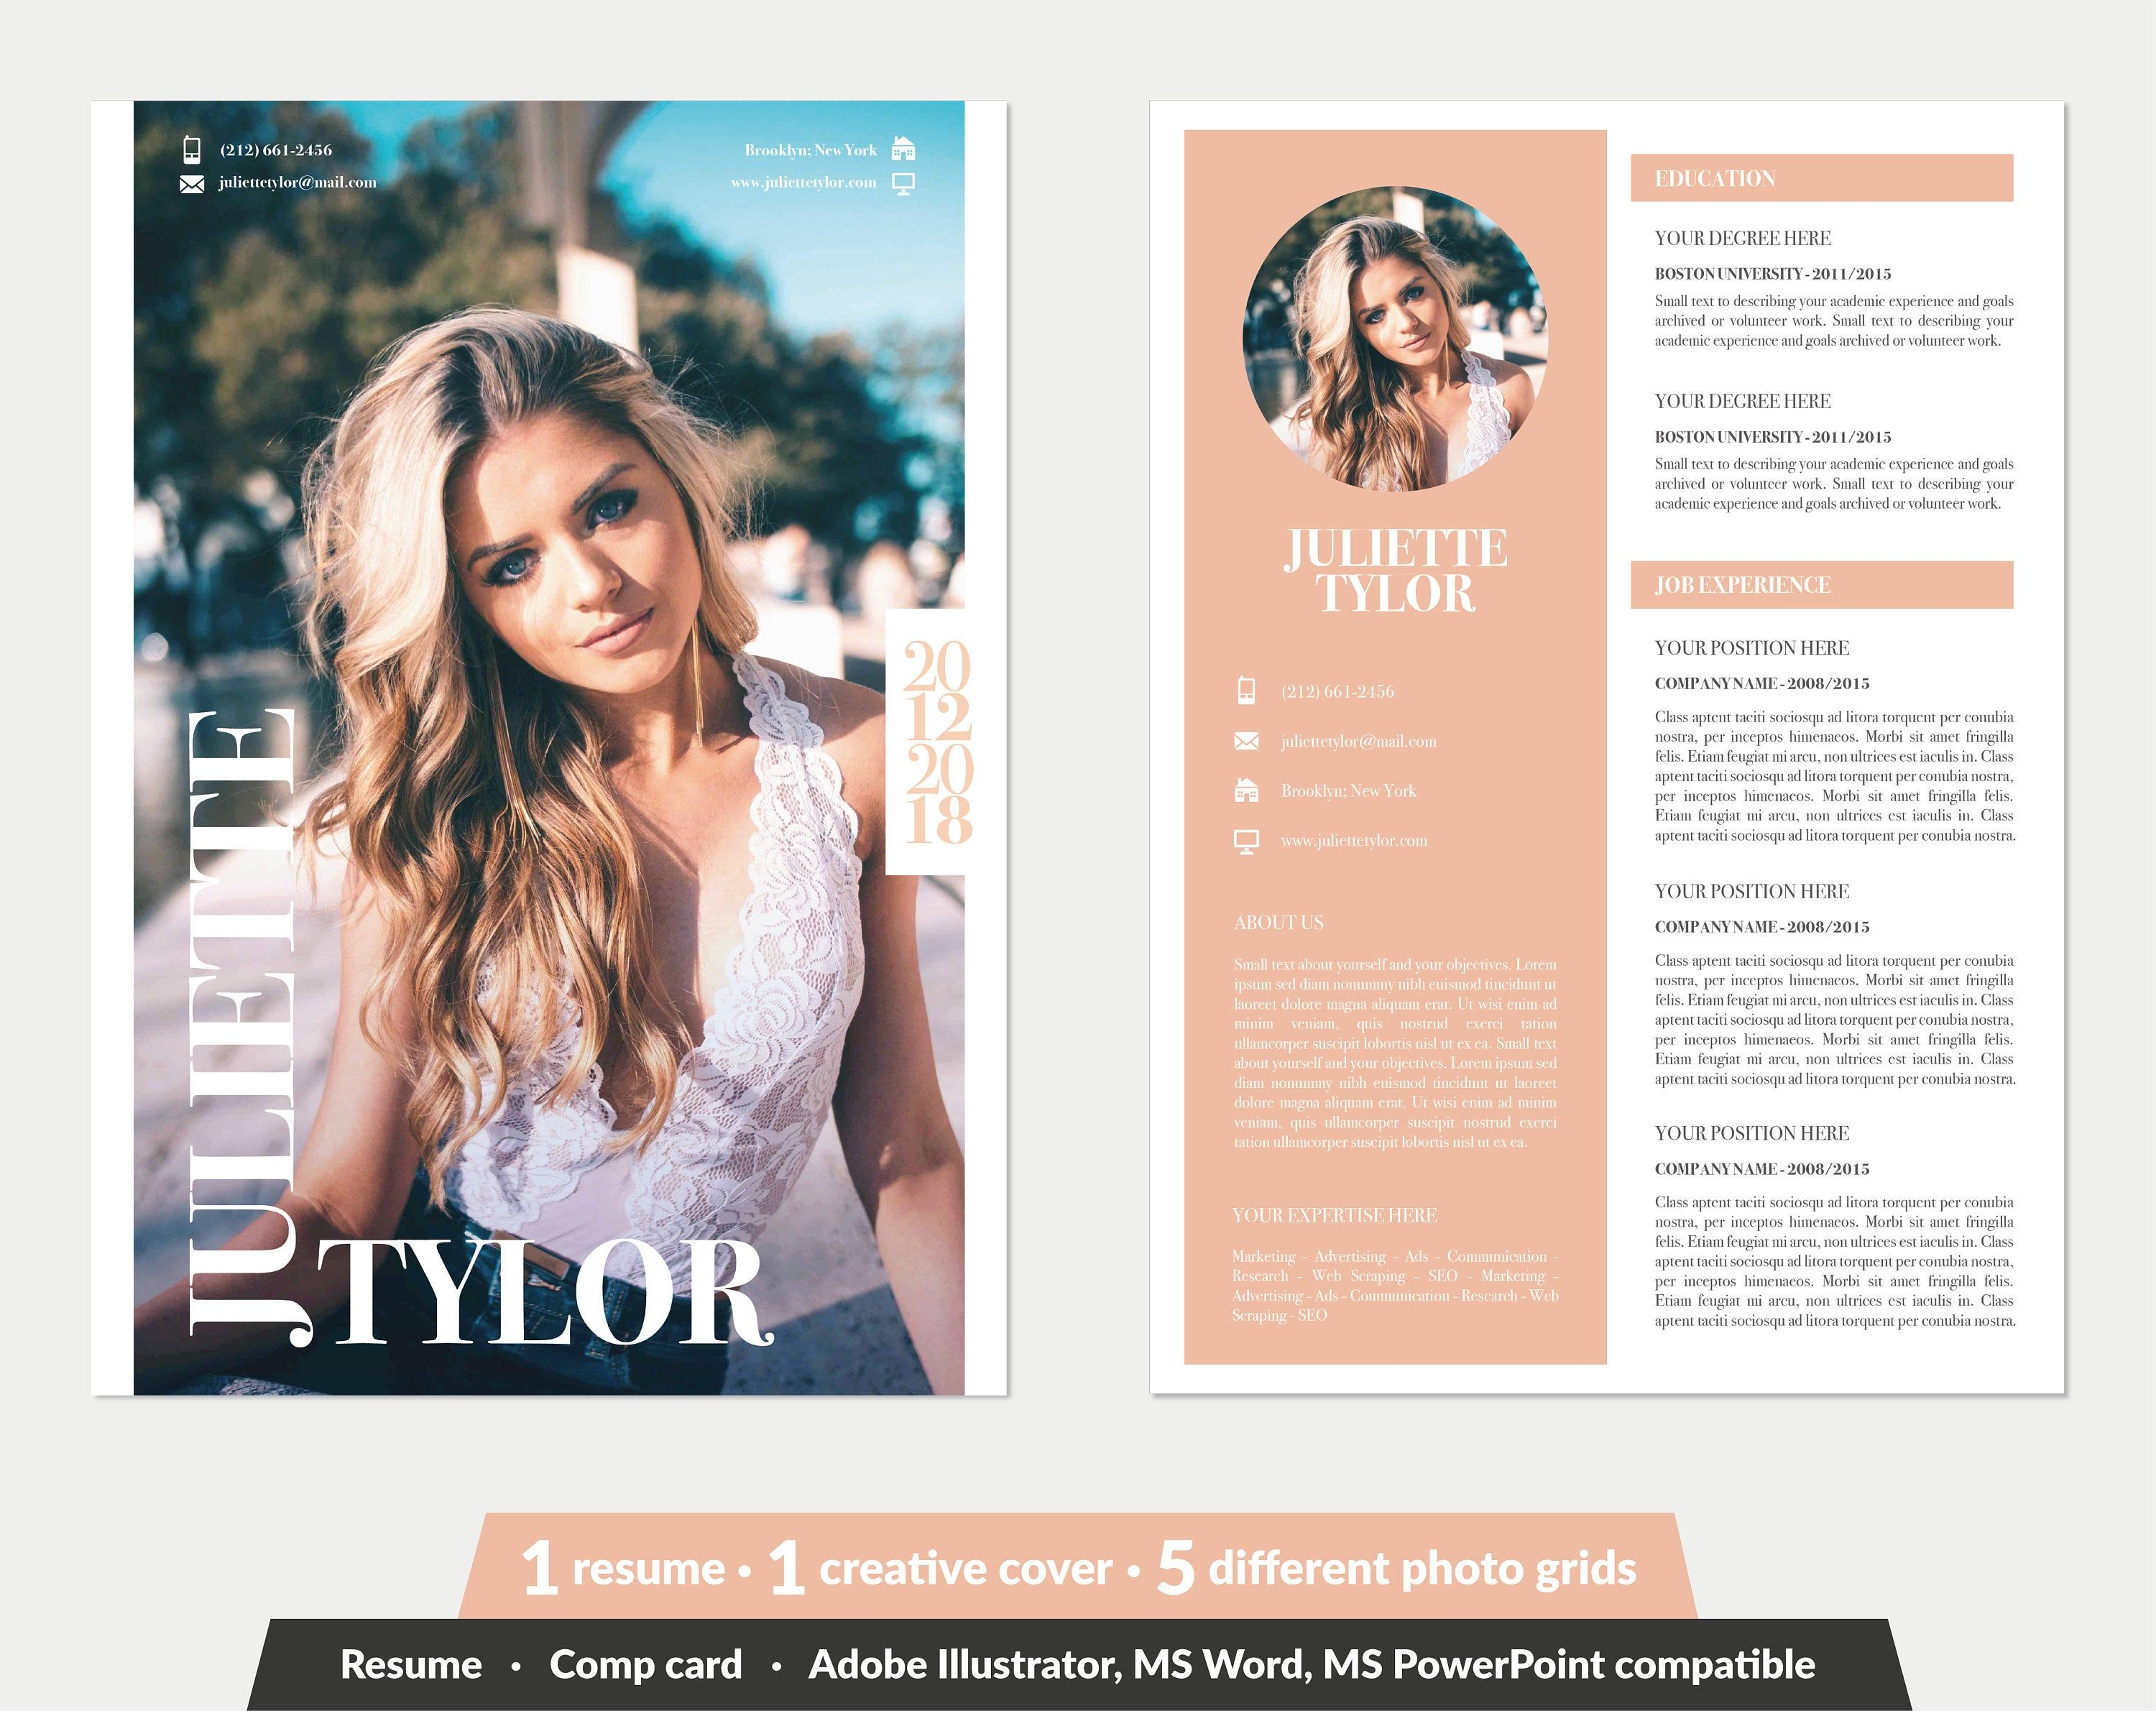 Modeling Comp Card Fashion Model Comp Card Template 5 Different Grid Layout Word Powerpoint Illustrator In Model Comp Card Grid Layouts Card Template